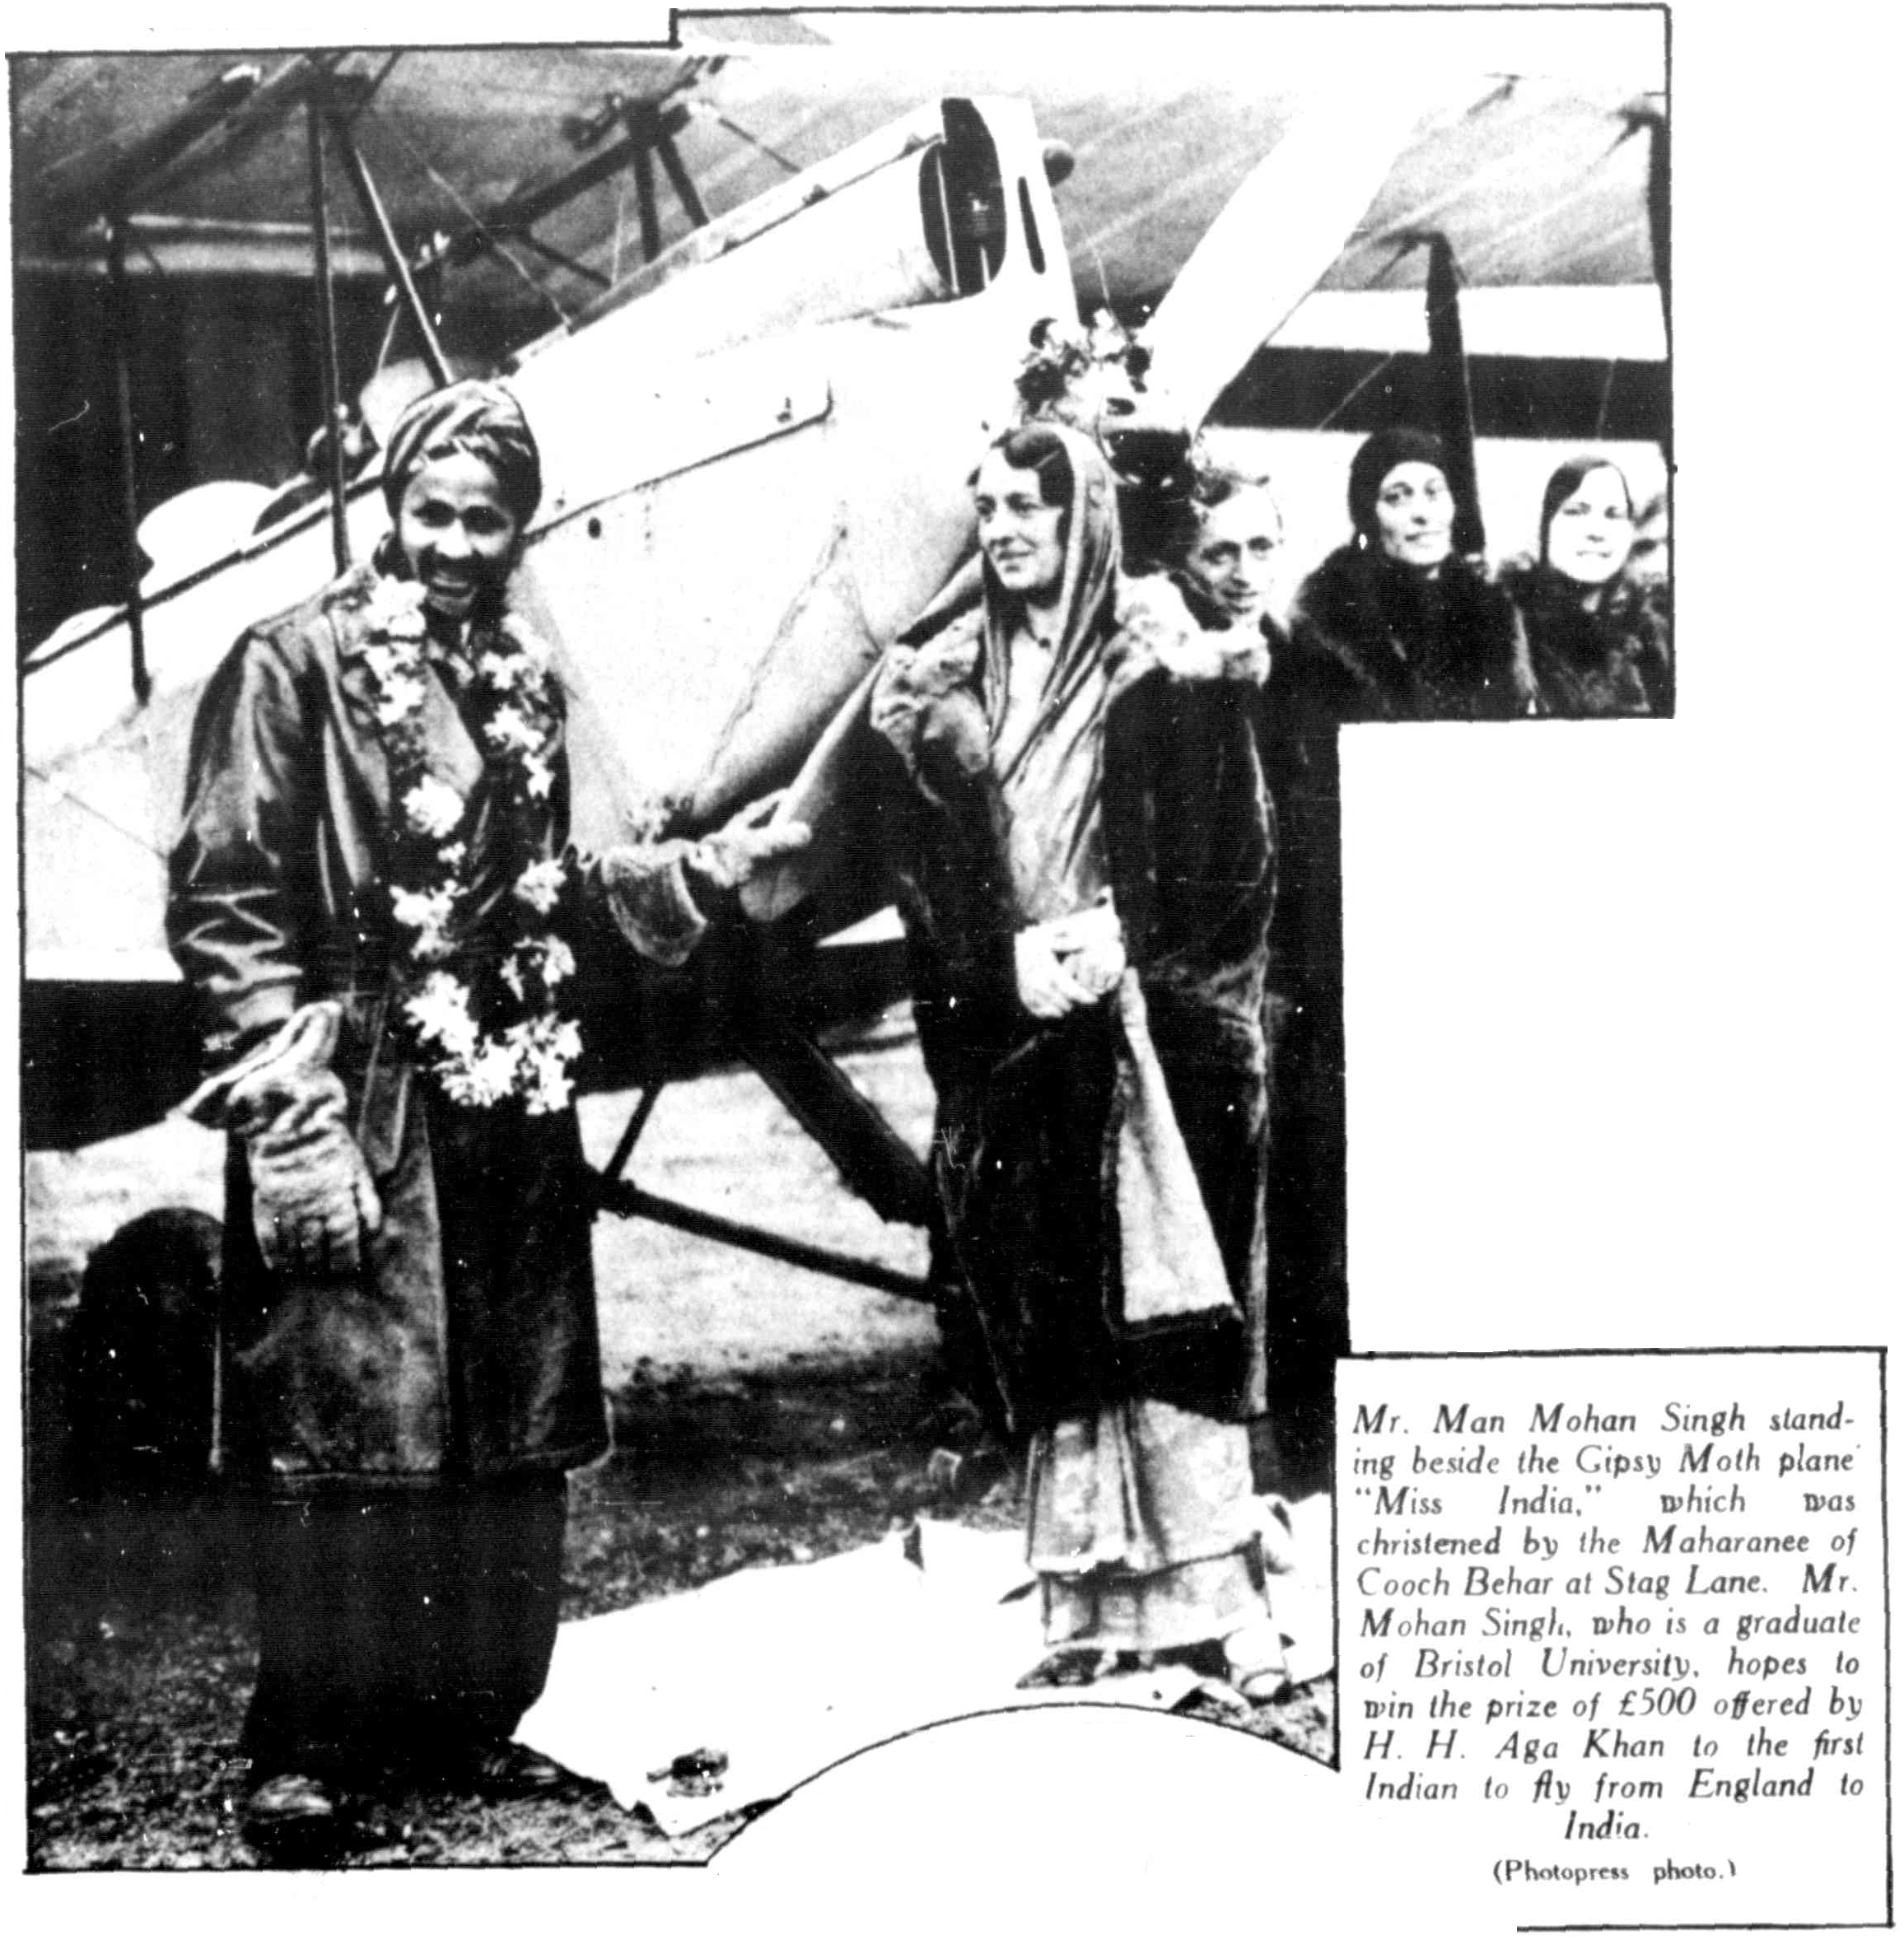 Article taken from 'The Australasian' a newspaper in Melbourne, Victoria dated 1 March 1930. Can be accessed directly via the following link:  http://nla.gov.au/nla.news-article141427456